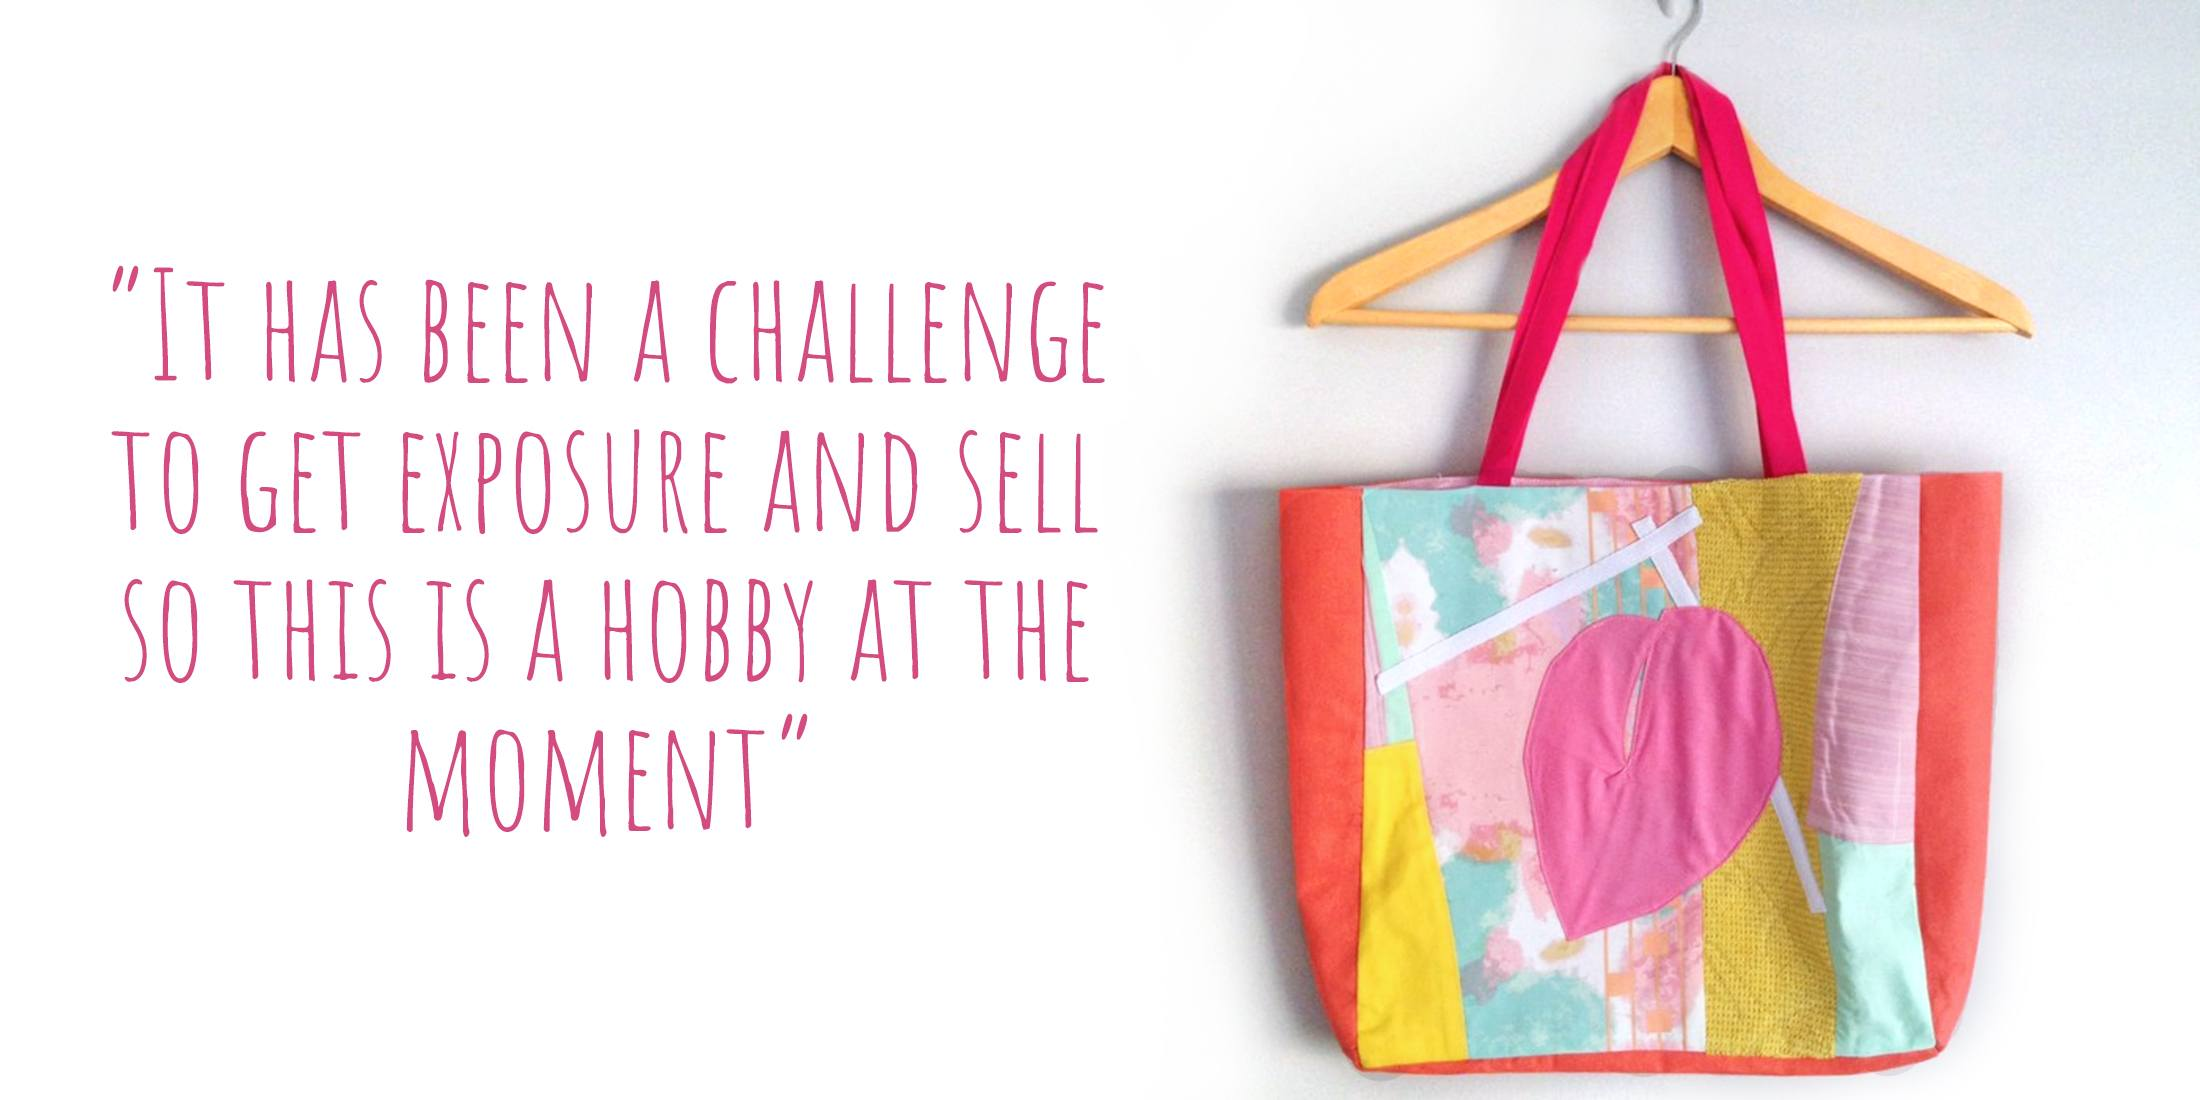 Sustainable patchwork tote bag made from repurposed fabric offcuts by CLEAN the Label: 'It has been a challenge to get exposure and sell, so this is a hobby at the moment'